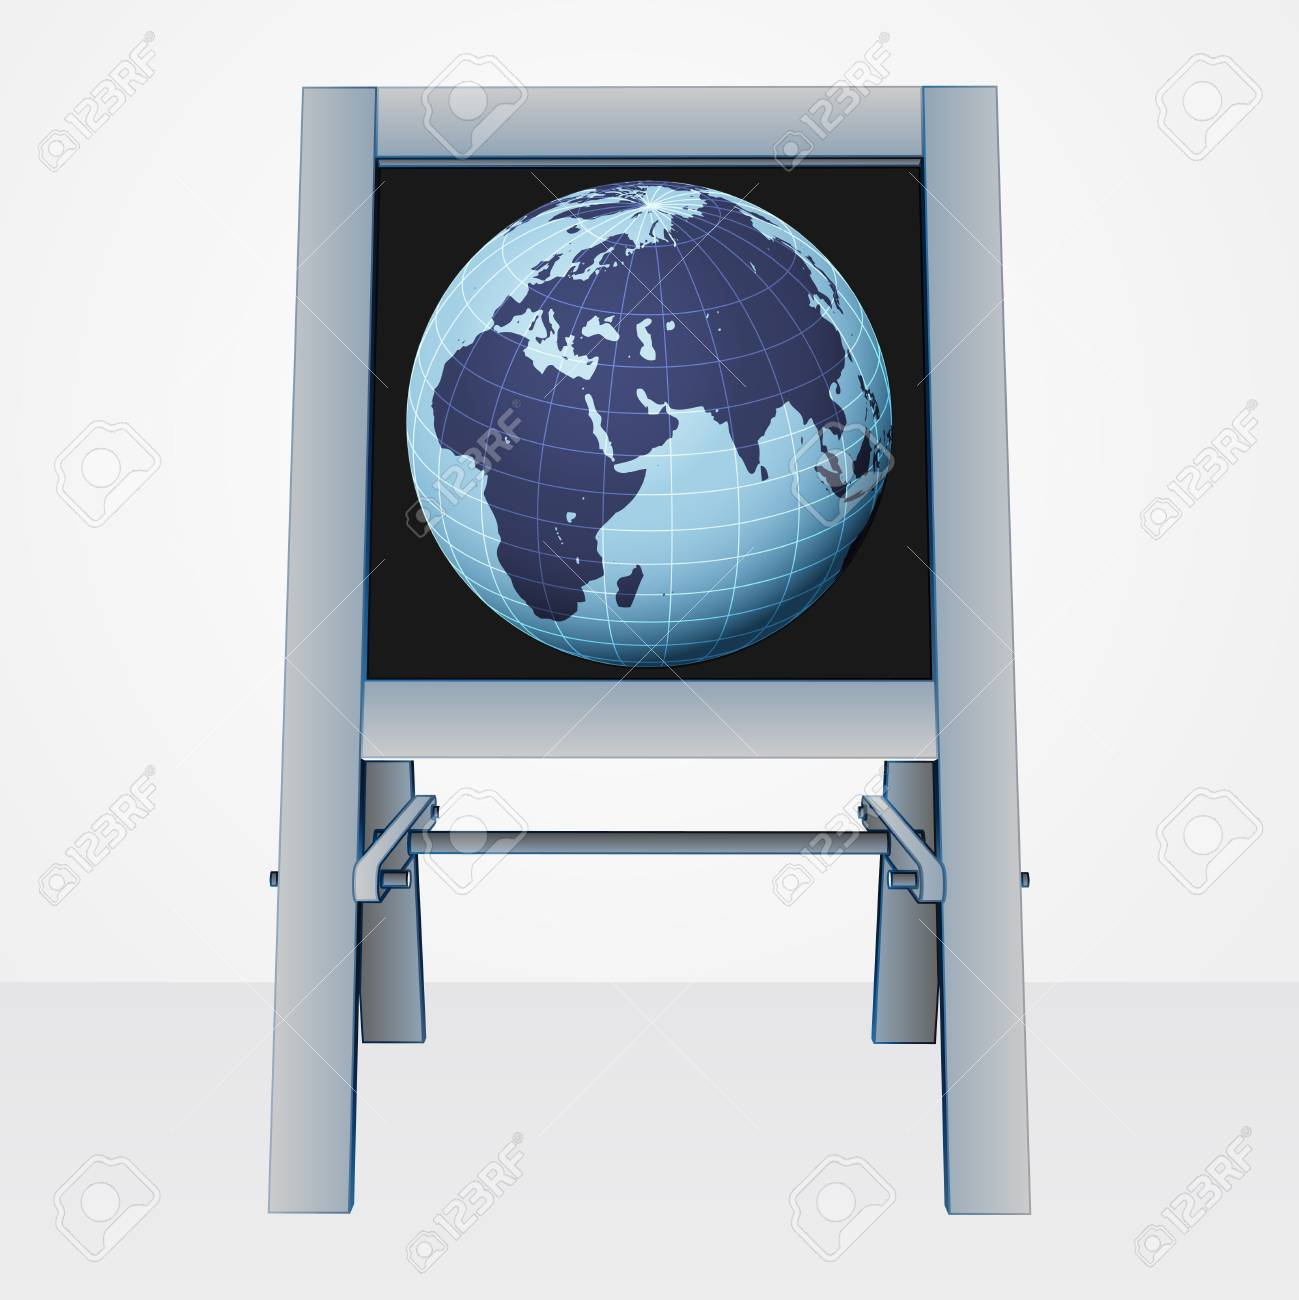 africa world presentation on easel board vector illustration Stock Vector - 21229067